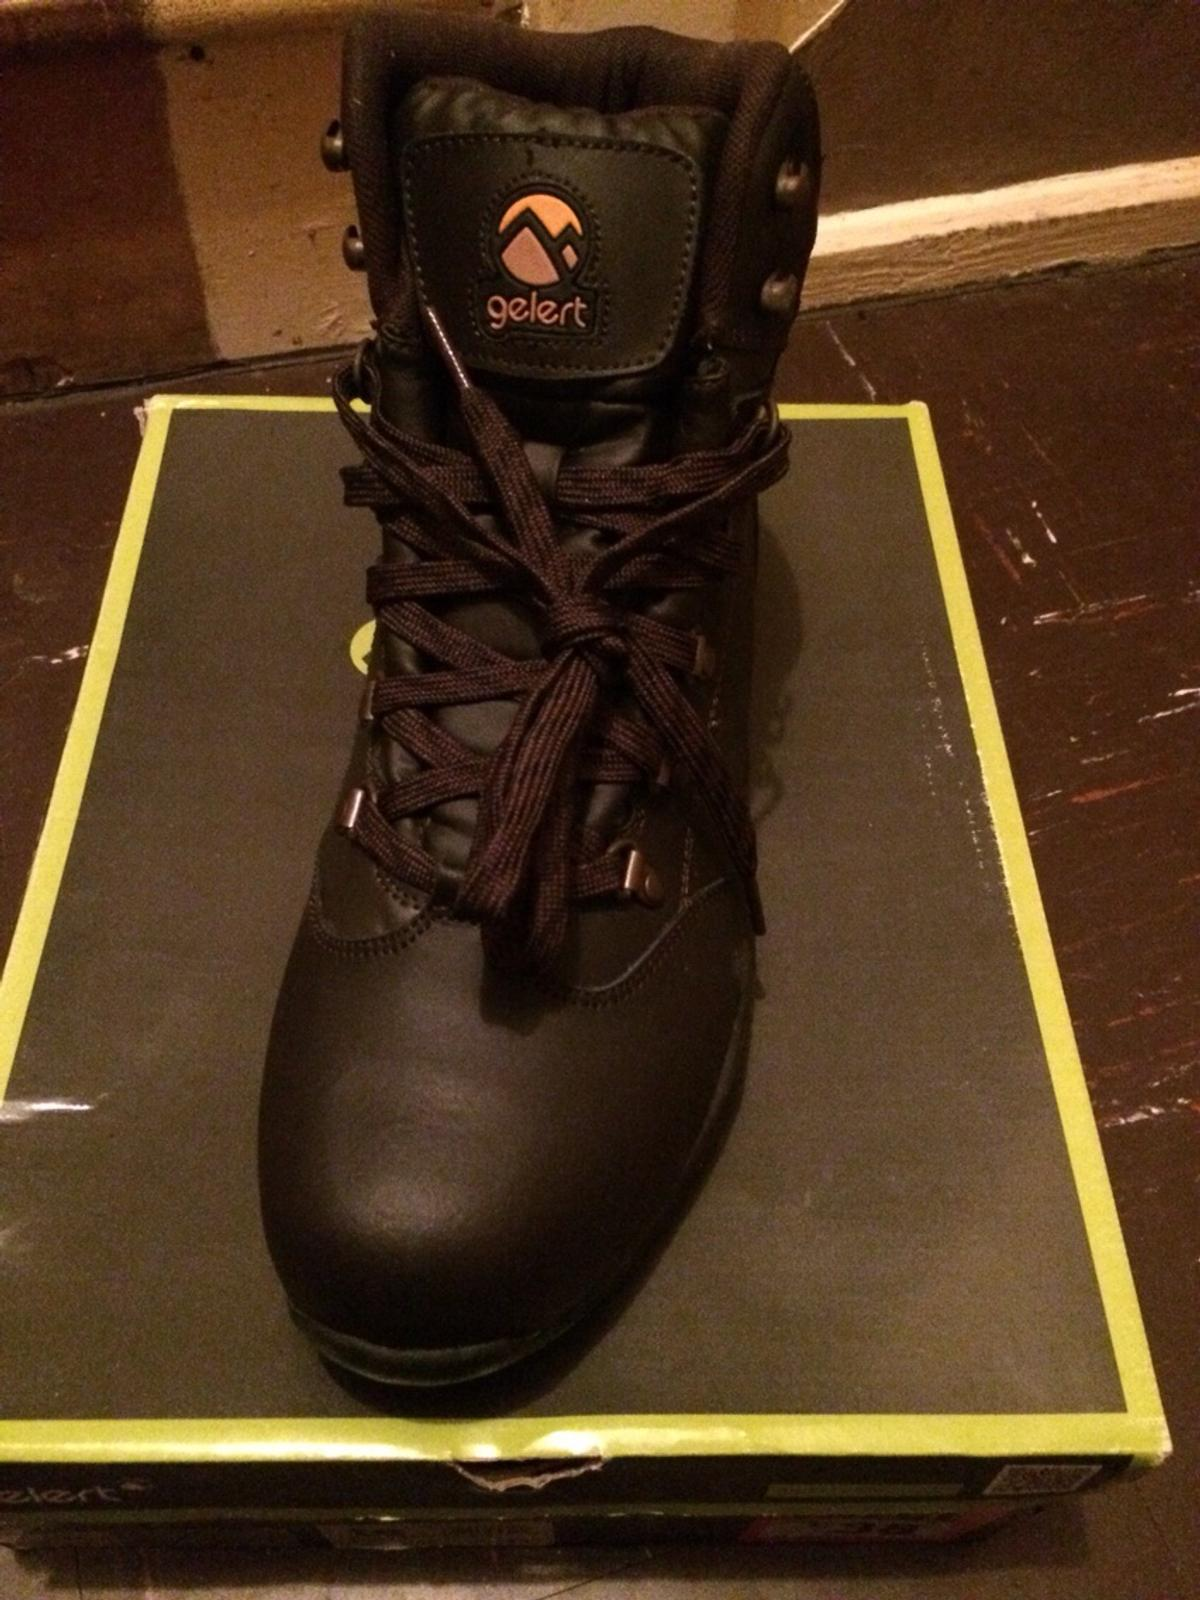 ac4d76f45dc Gelert Leather Mens Walking Boots in EC1V London for £20.00 for sale ...